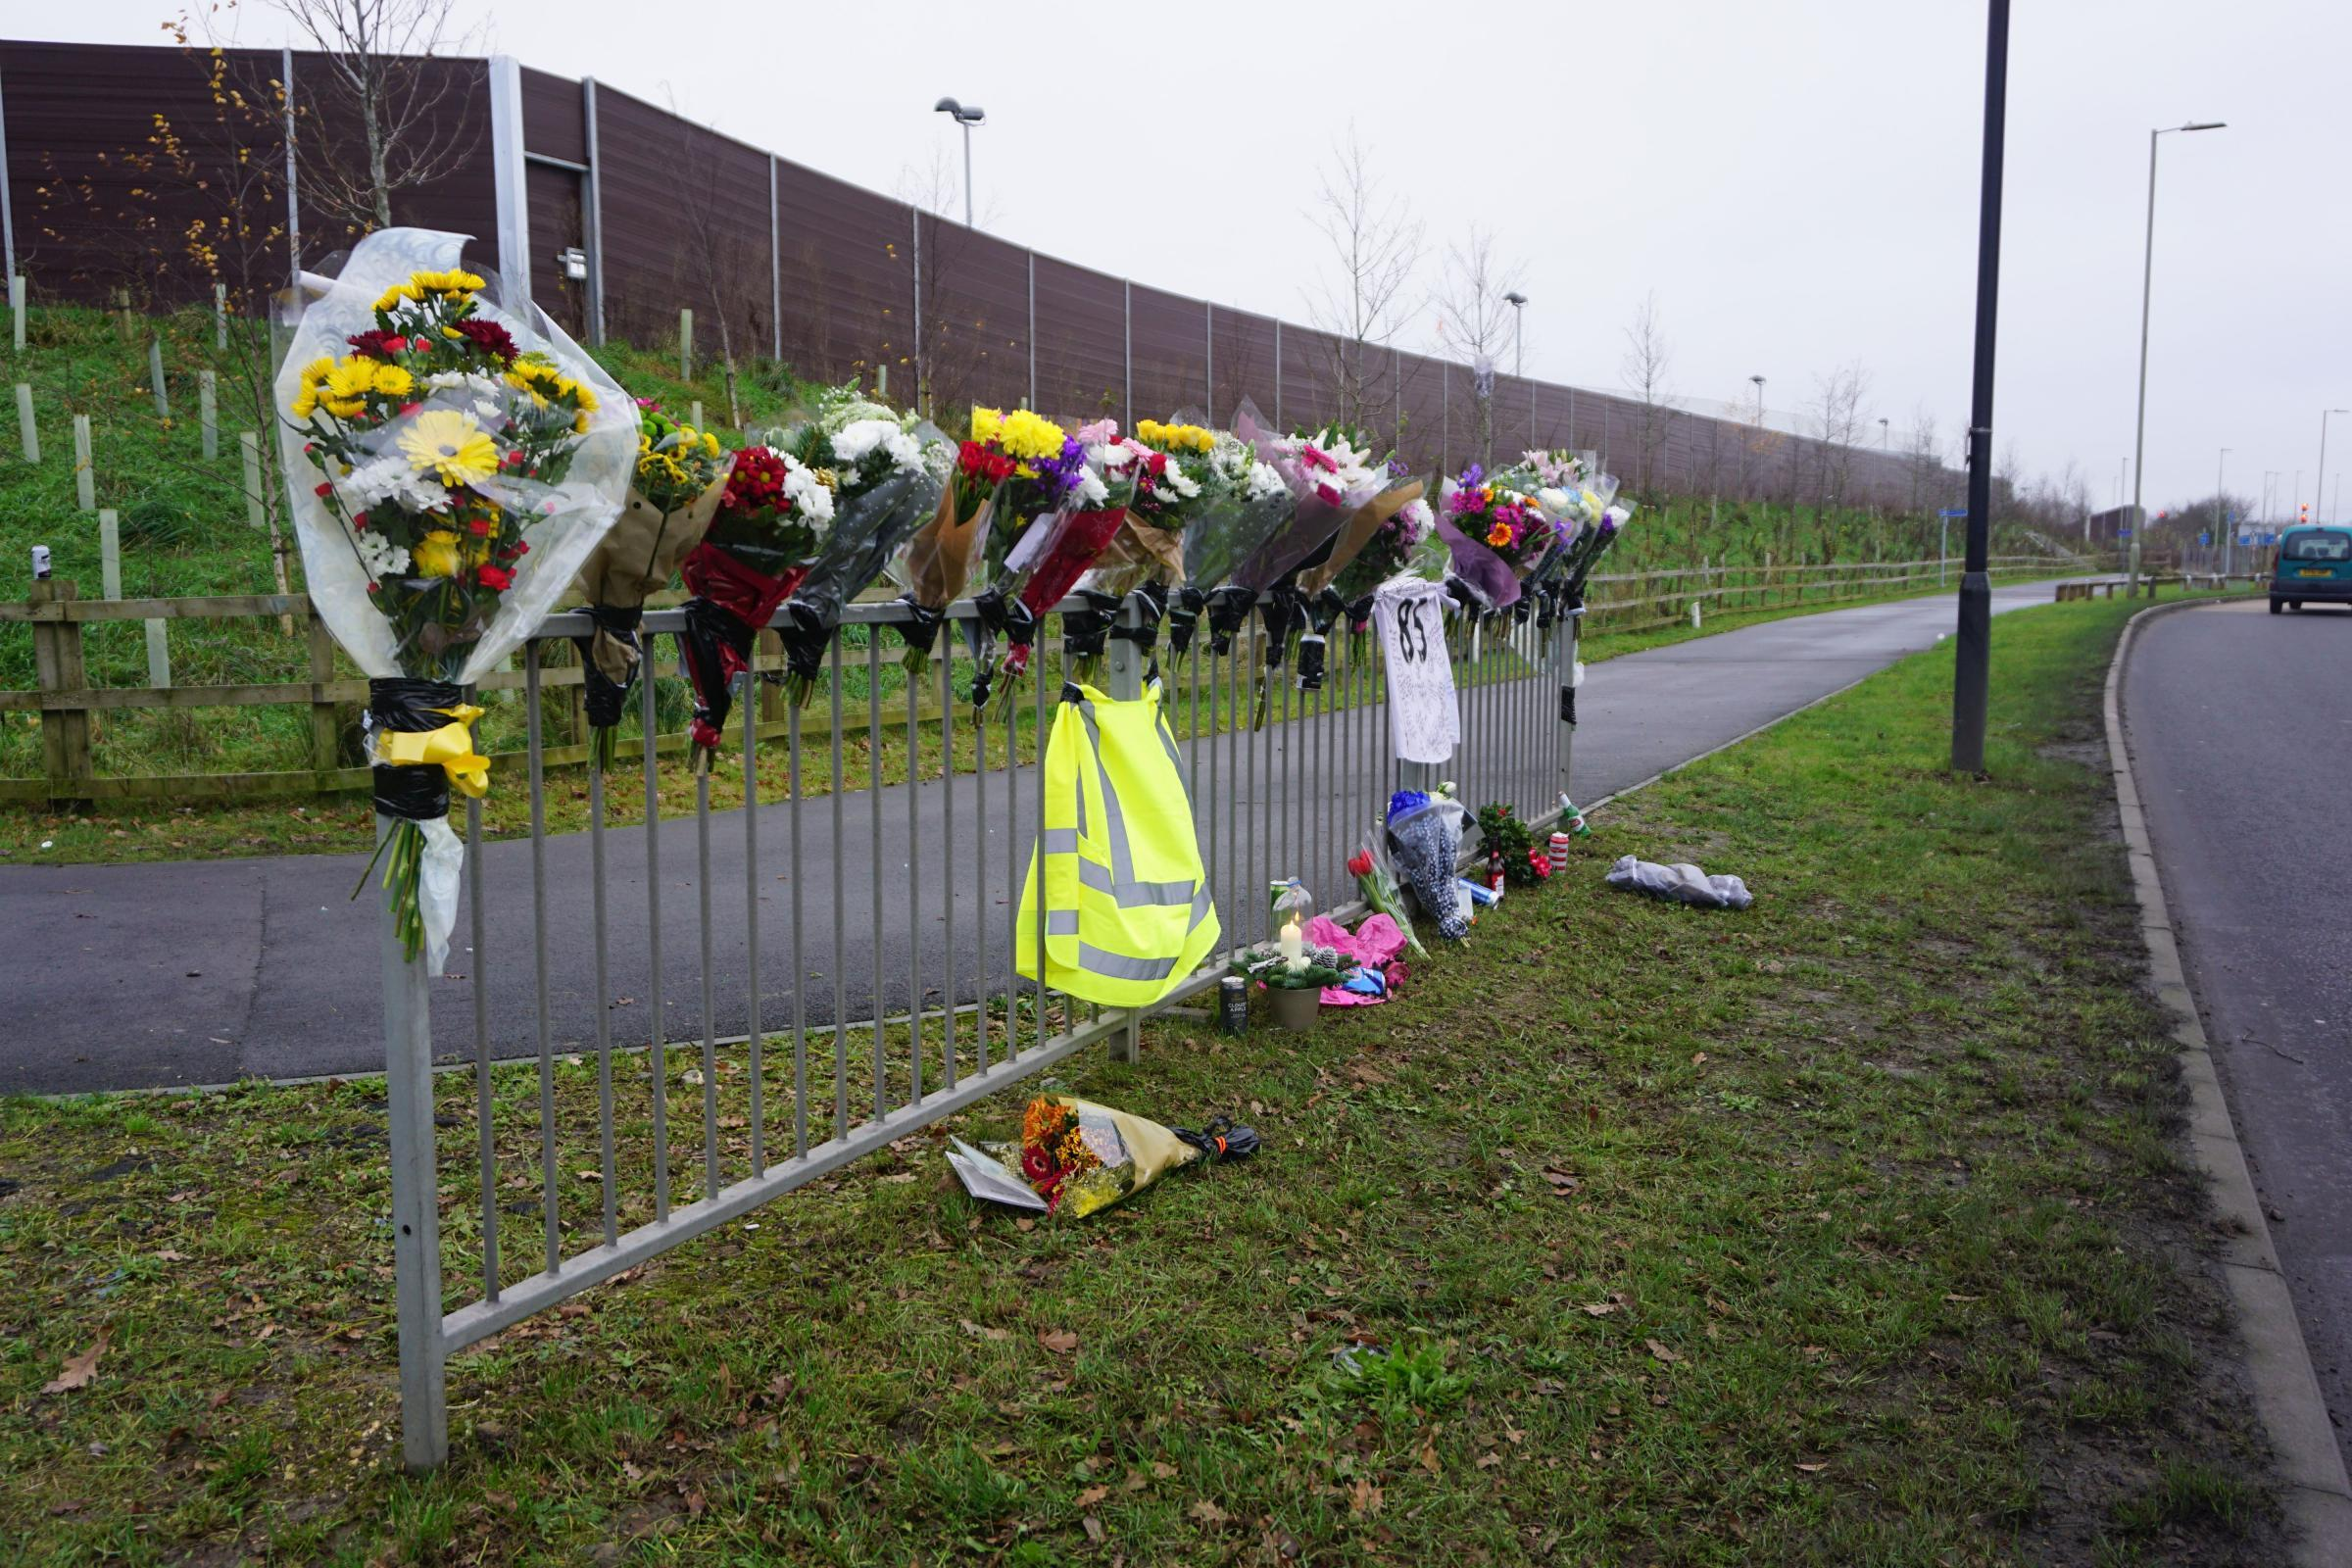 Tributes left at the scene of the tragedy.